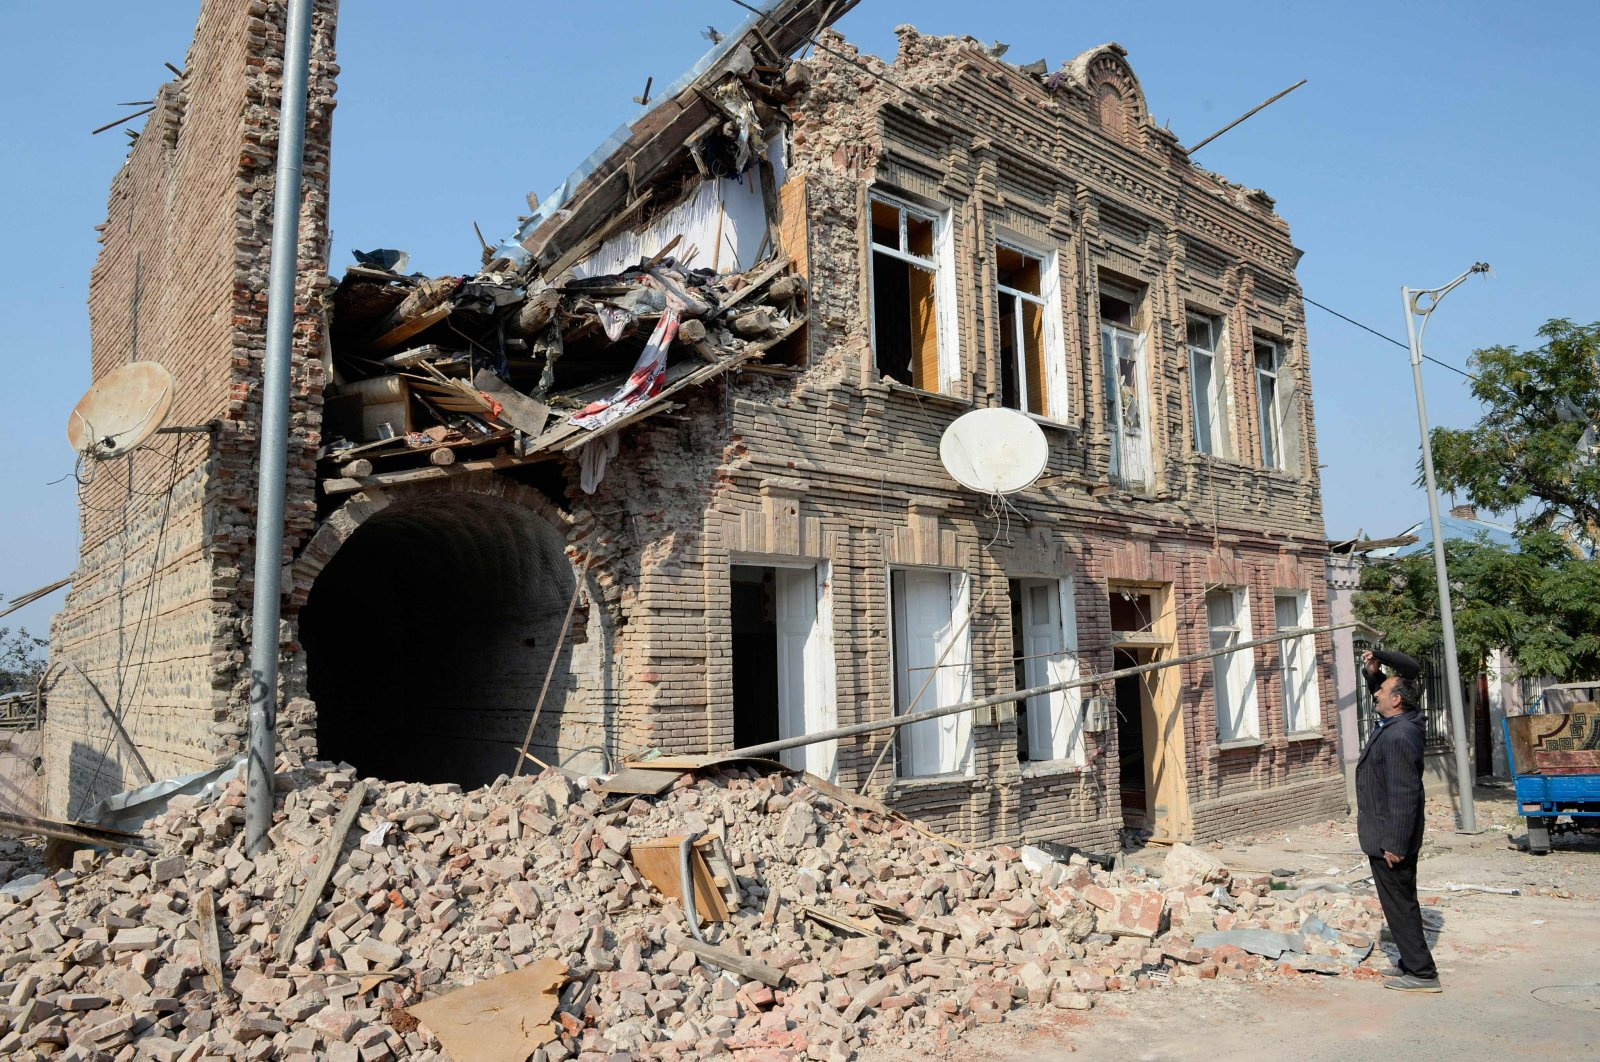 Local man looks at a residential building damaged by shelling during the ongoing military conflict between Armenia and Azerbaijan over the occupied region of Nagorno-Karabakh, in the city of Ganja, Azerbaijan, on Oct. 27, 2020. (AFP)